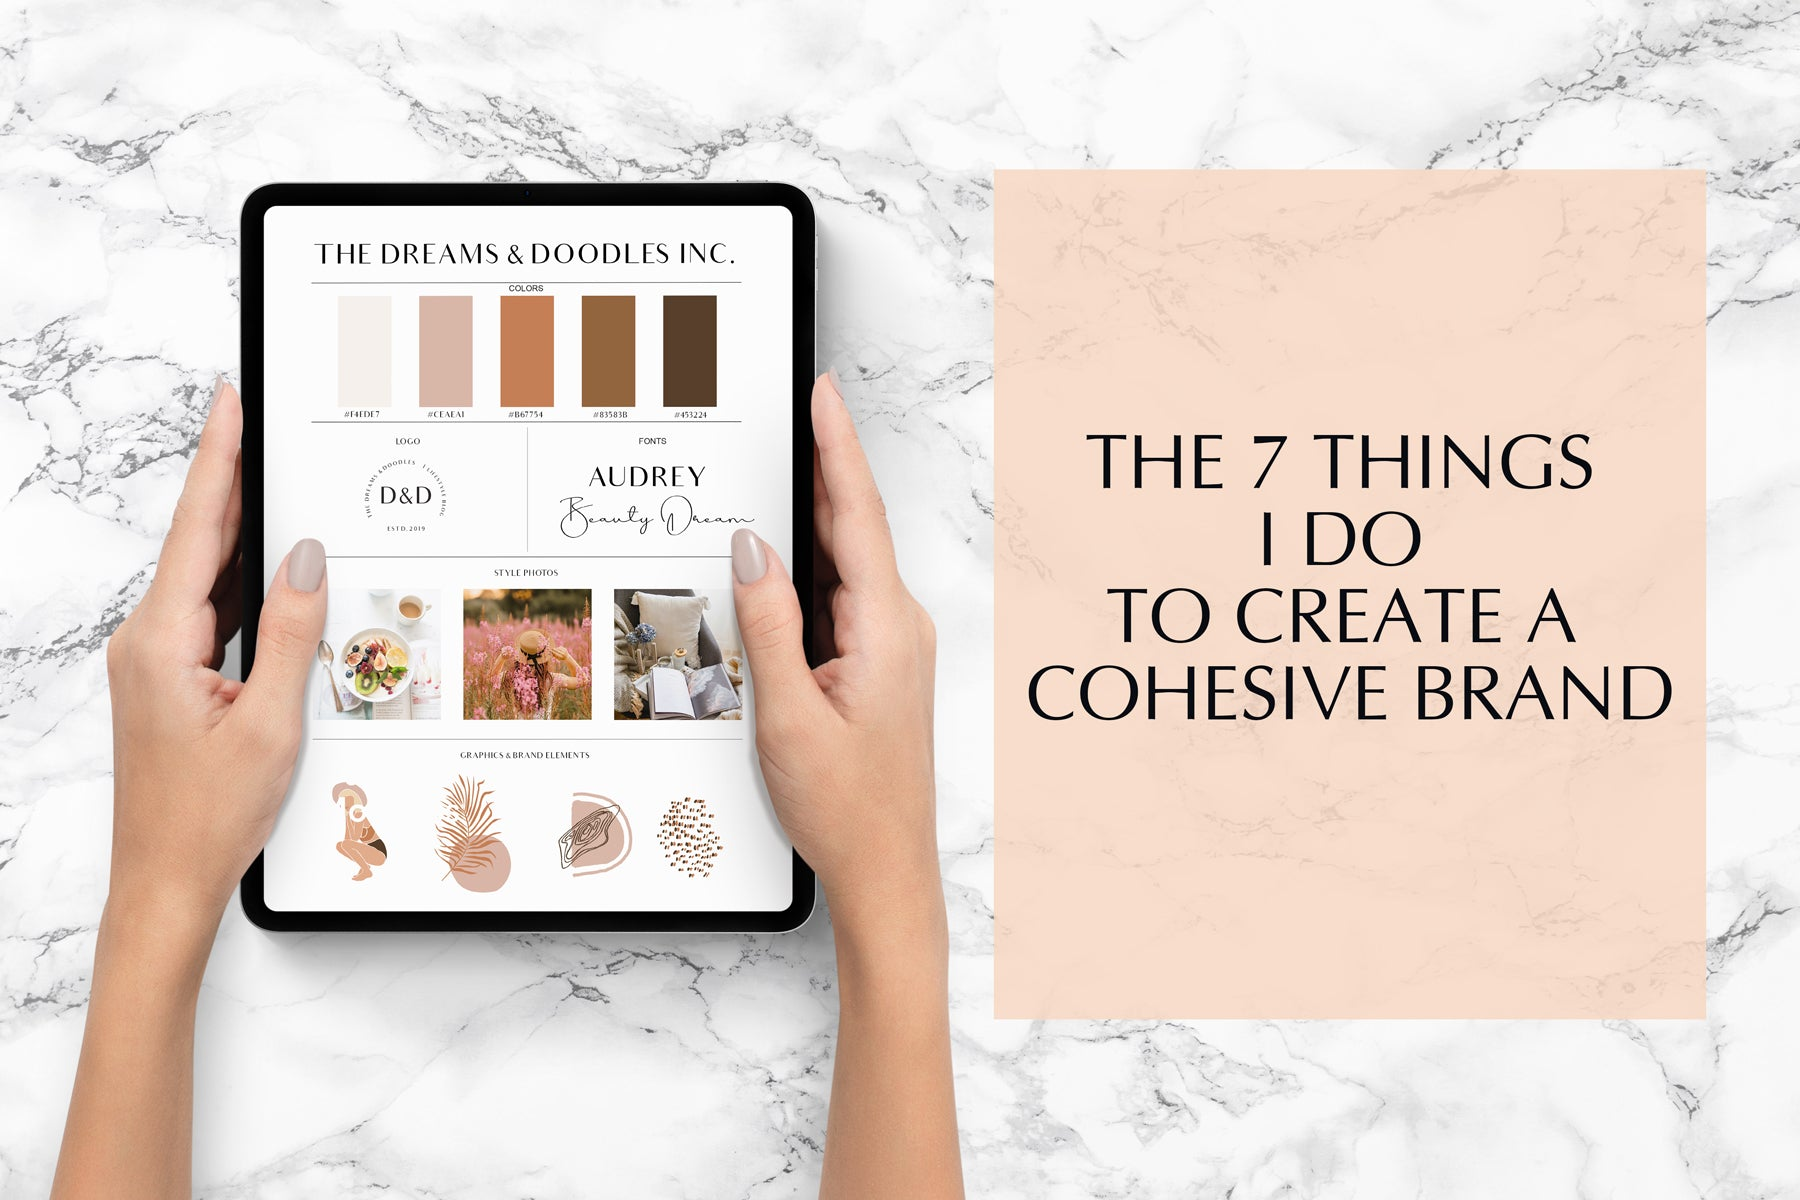 HOW TO MAKE YOUR BRAND LOOK COHESIVE